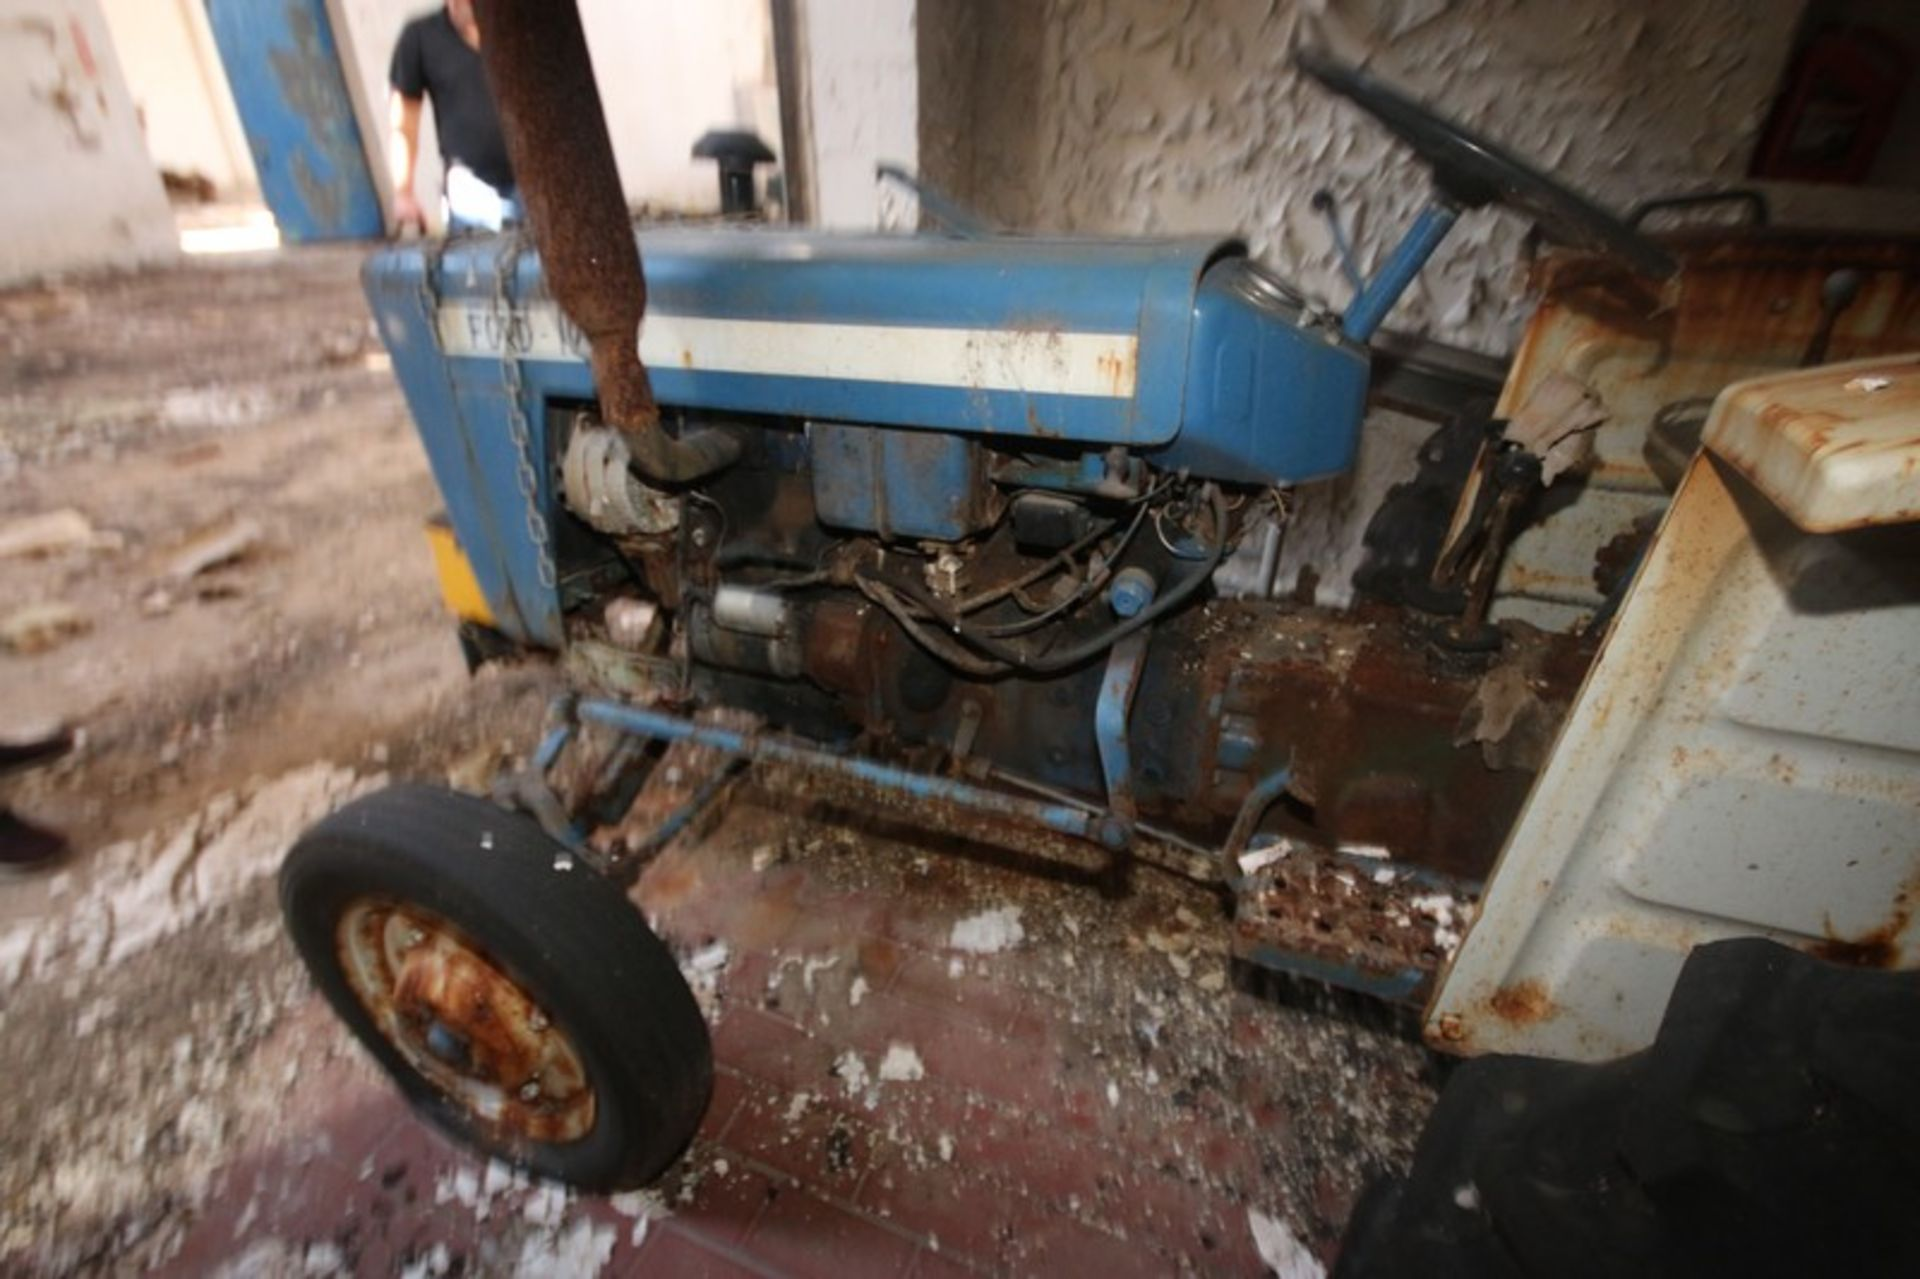 Ford 1000 Tractor with Rear Mower Attachment (LOCATED IN Muenster, TX) - Image 3 of 6